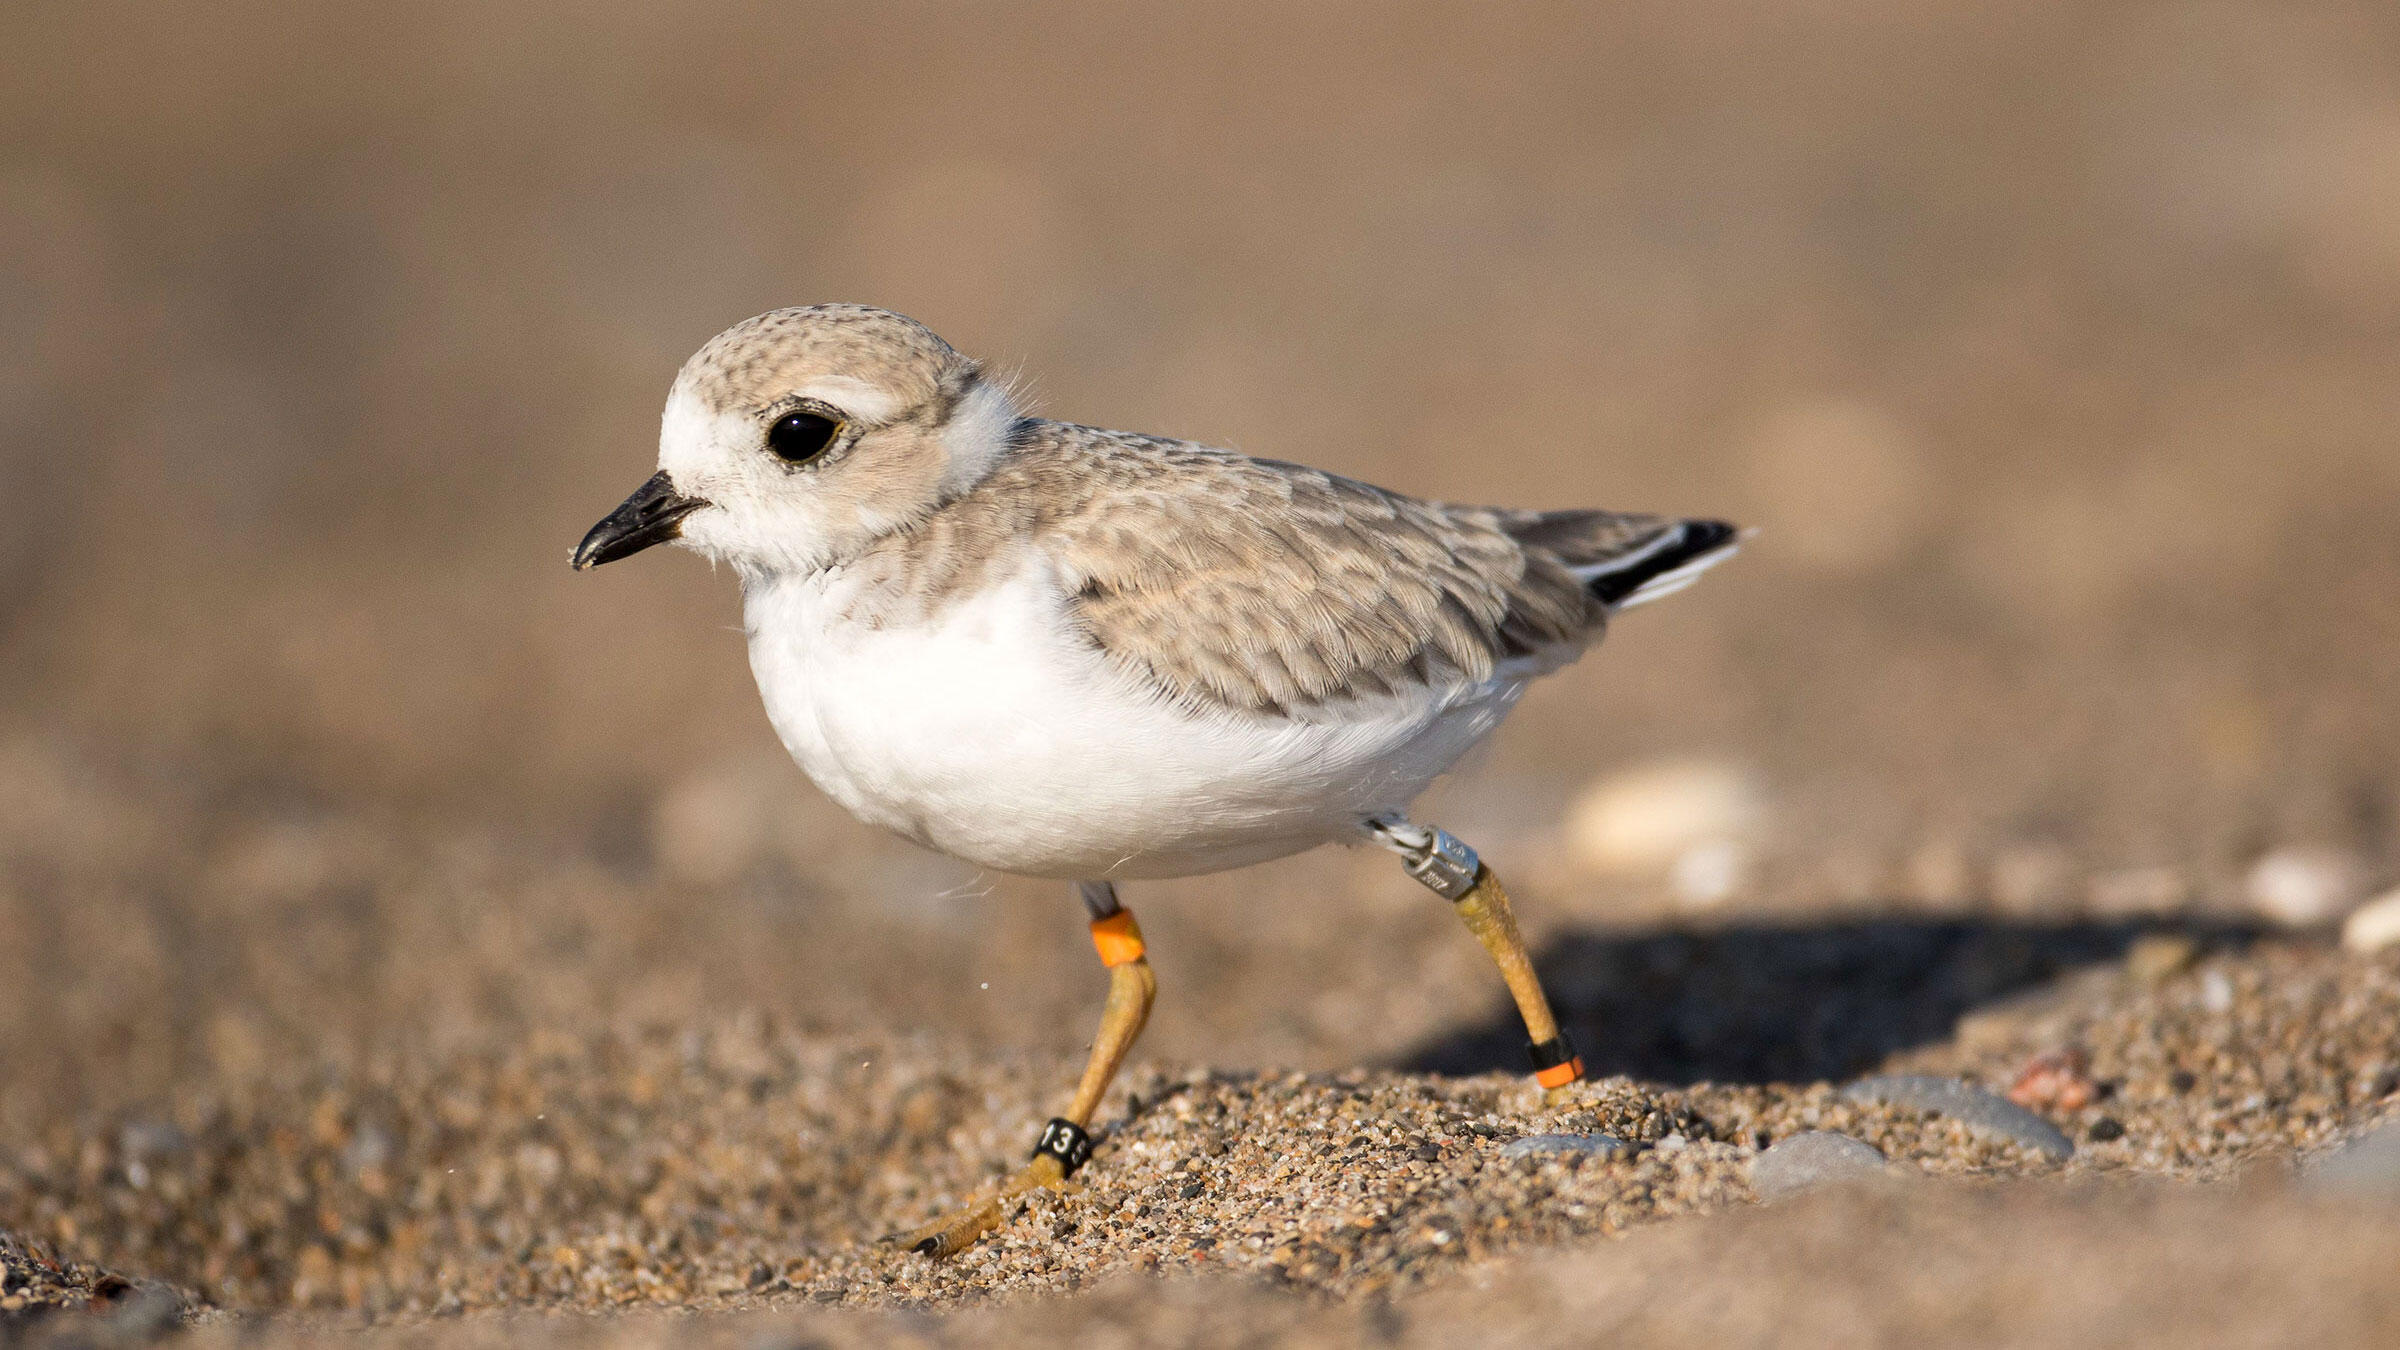 One of Toronto's own Piping Plover fledglings shows off its leg bands, which were strapped on when the chicks were nine days old. These bands identify each chick as an individual and allow scientists to follow its entire life history. Mark Peck